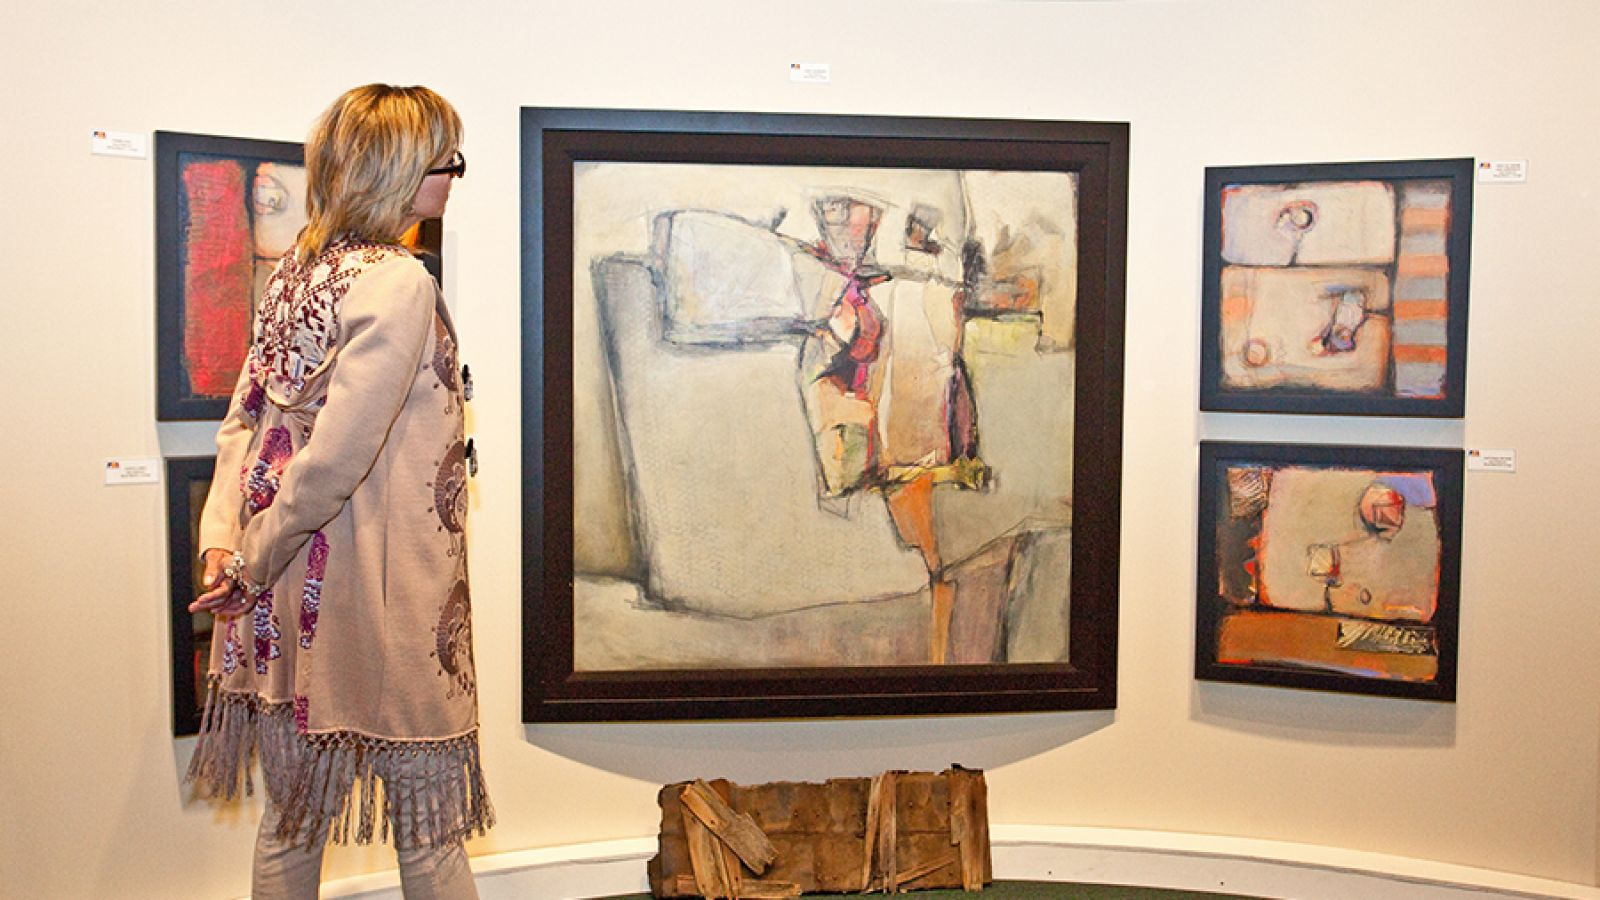 Numerous art exhibits are presented.